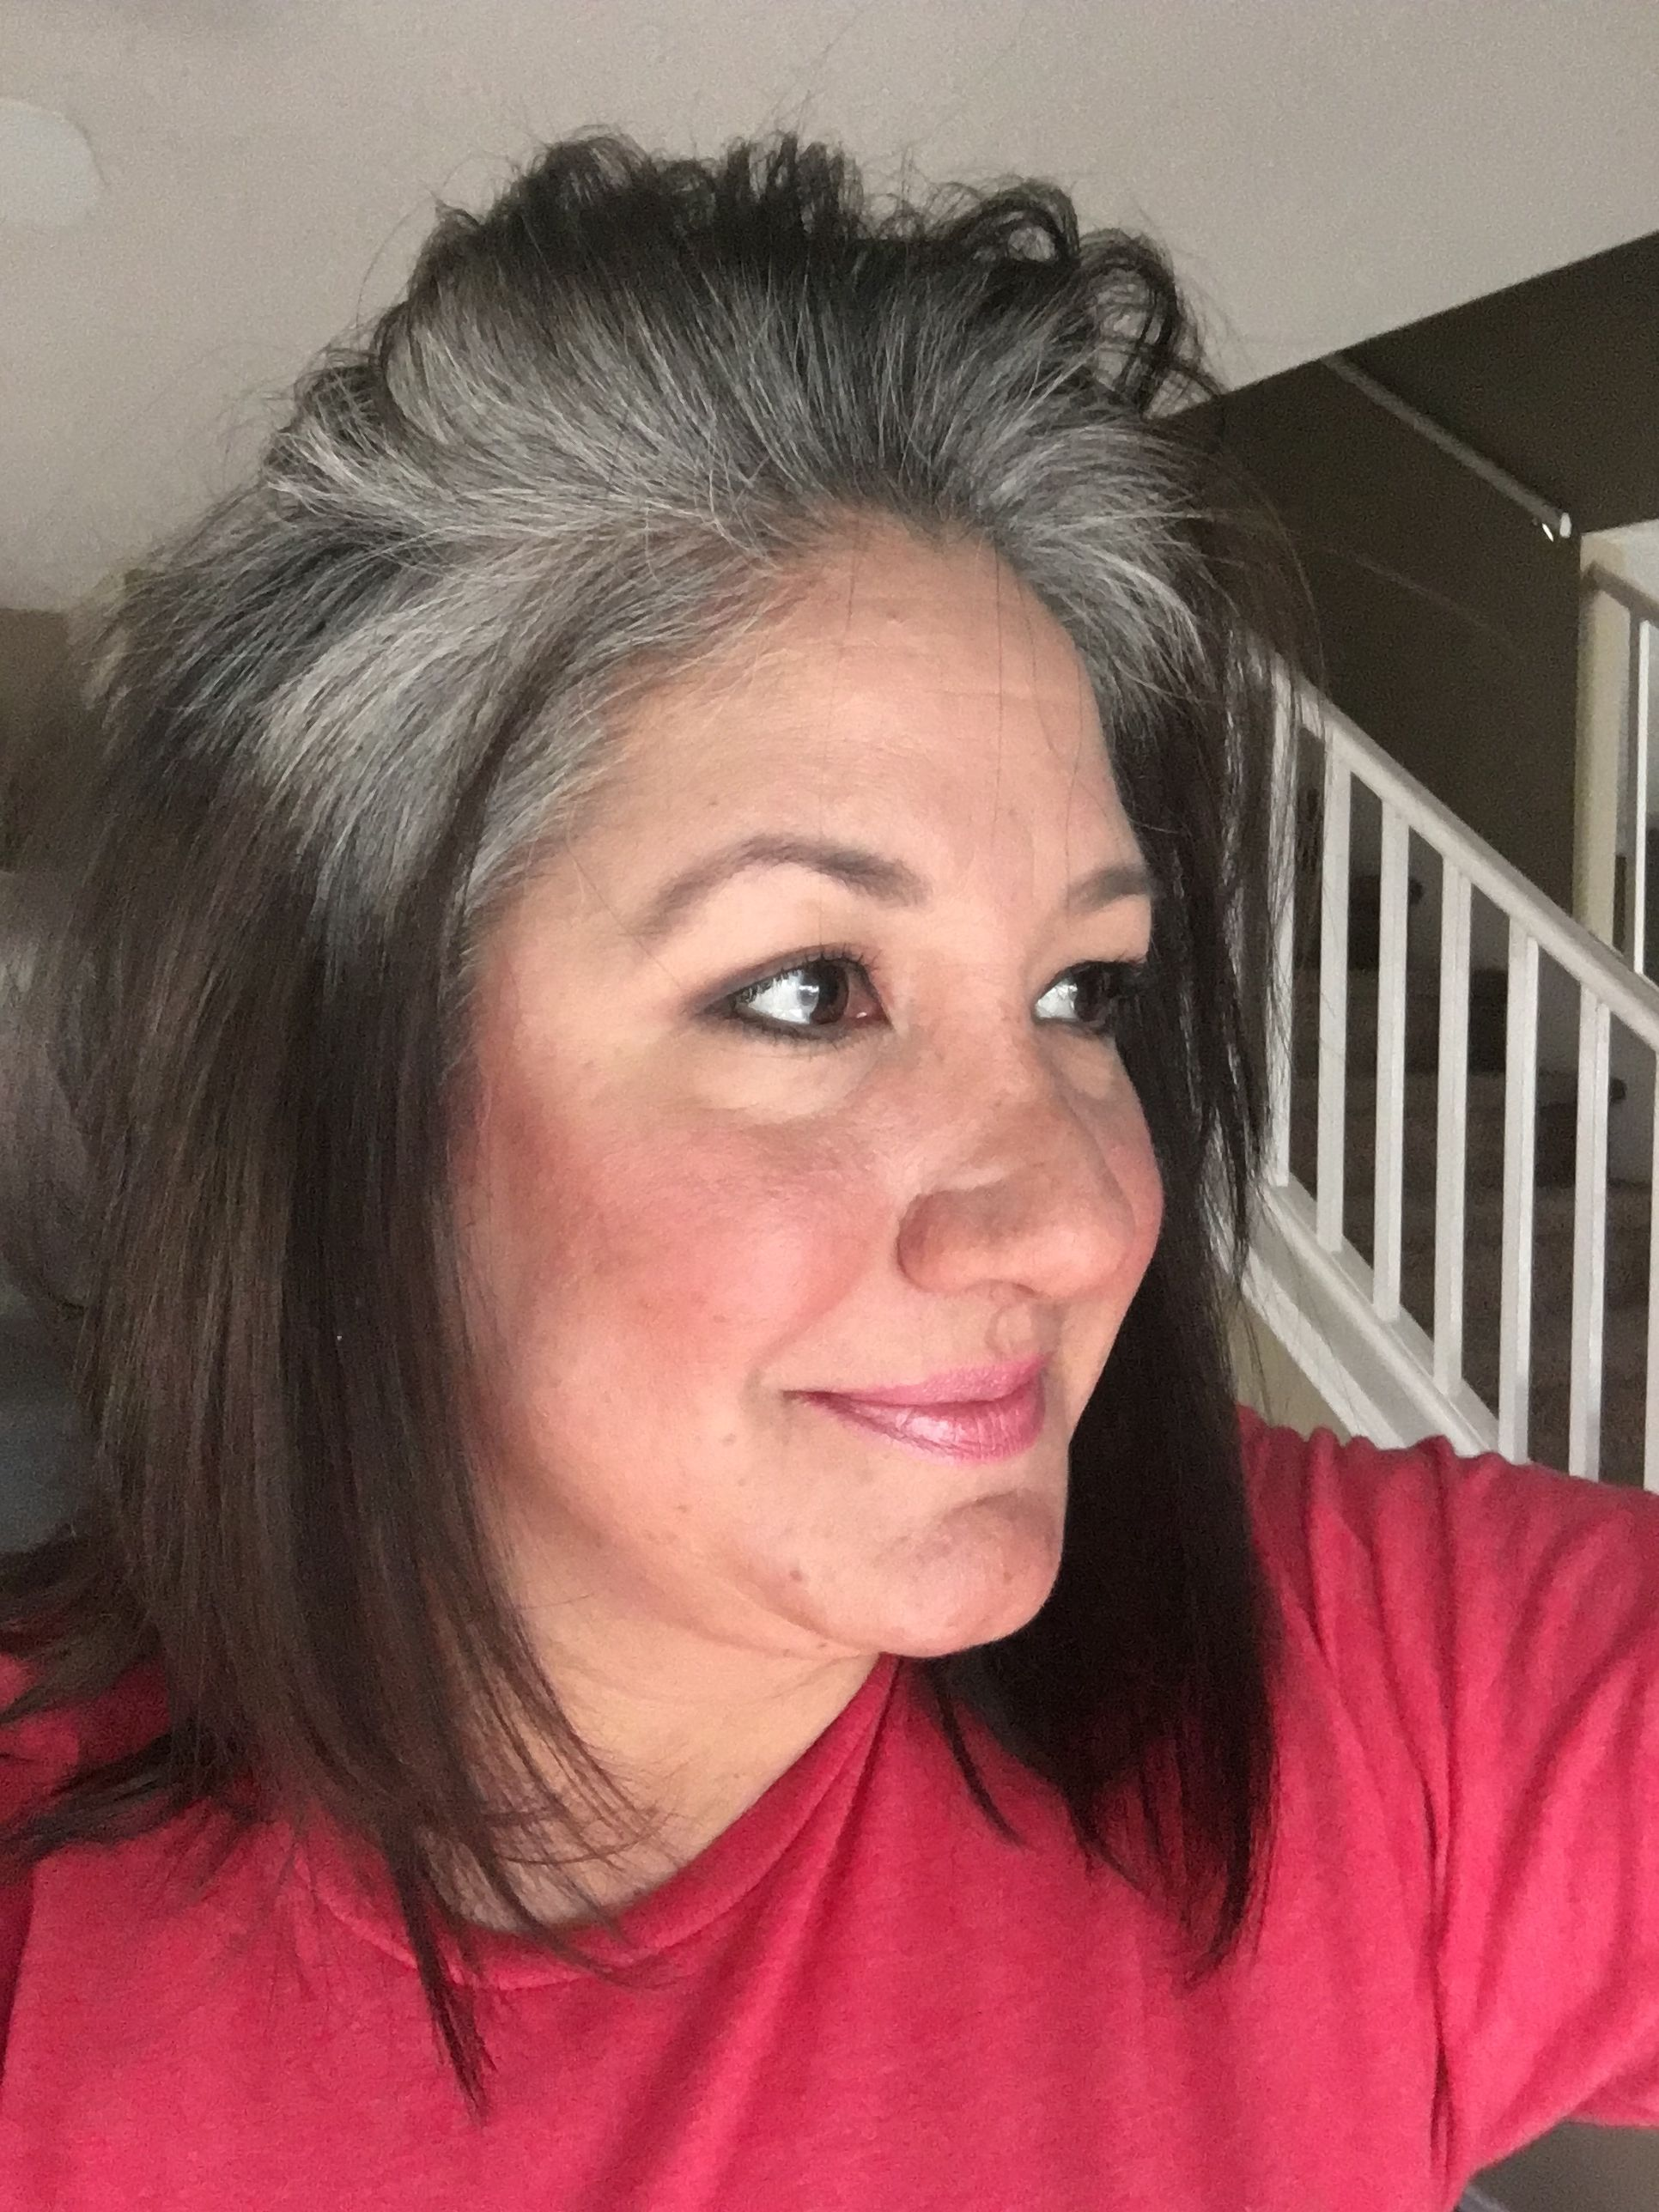 3 1 2 Months Of Growing Out My Grey Naturally Doesn T Feel Any Different Than My Natural Hair Did In Fac Dying Gray Hair Gray Hair Growing Out Long Gray Hair